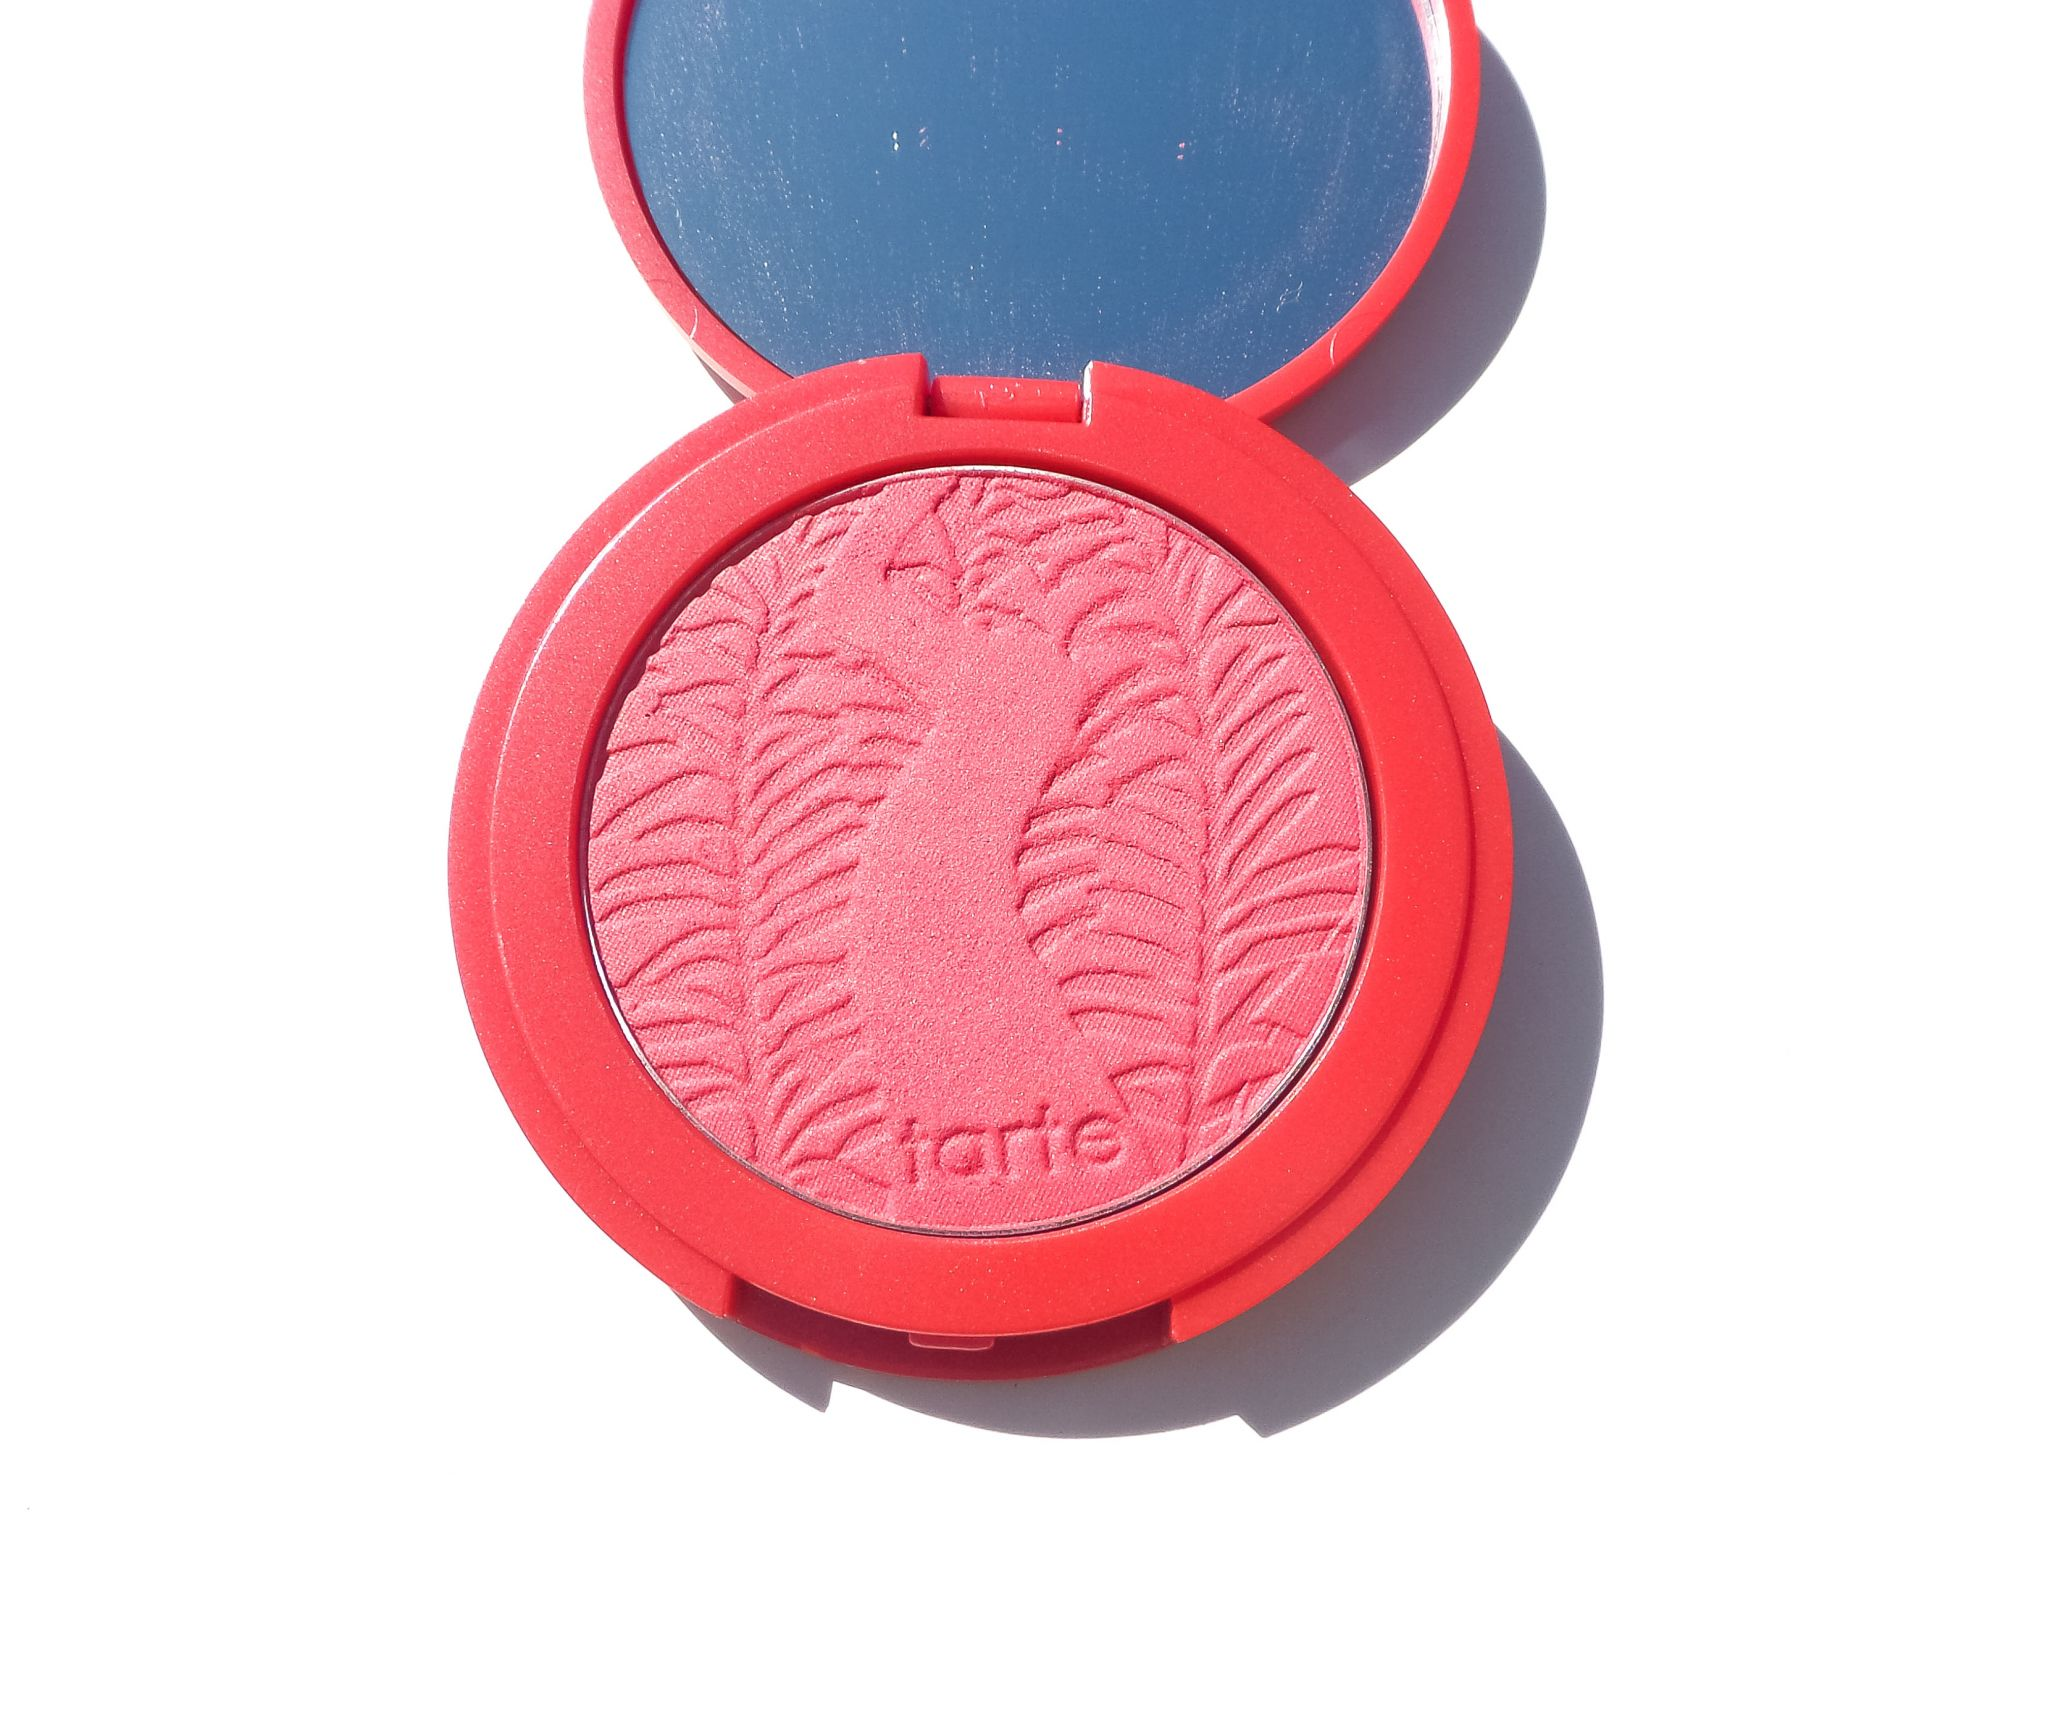 Tarte Amazonian Blush Natural Beauty